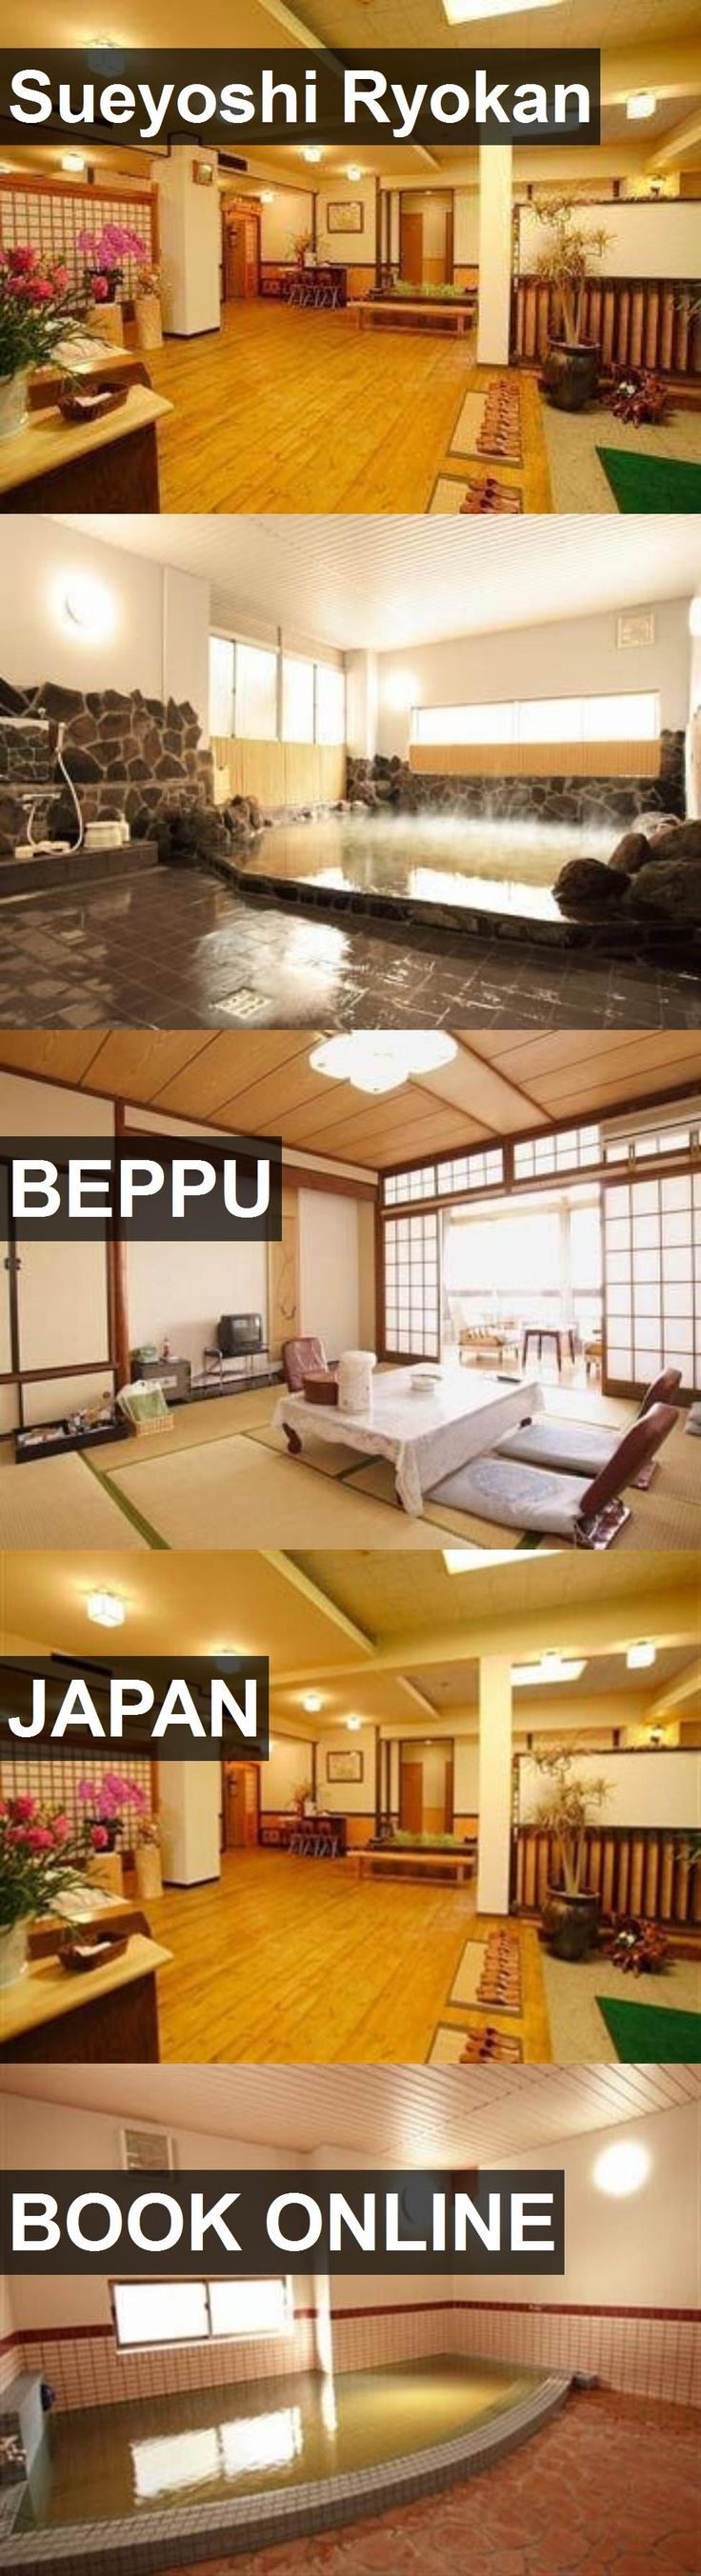 Hotel Sueyoshi Ryokan in Beppu, Japan. For more information, photos, reviews and best prices please follow the link. #Japan #Beppu #SueyoshiRyokan #hotel #travel #vacation